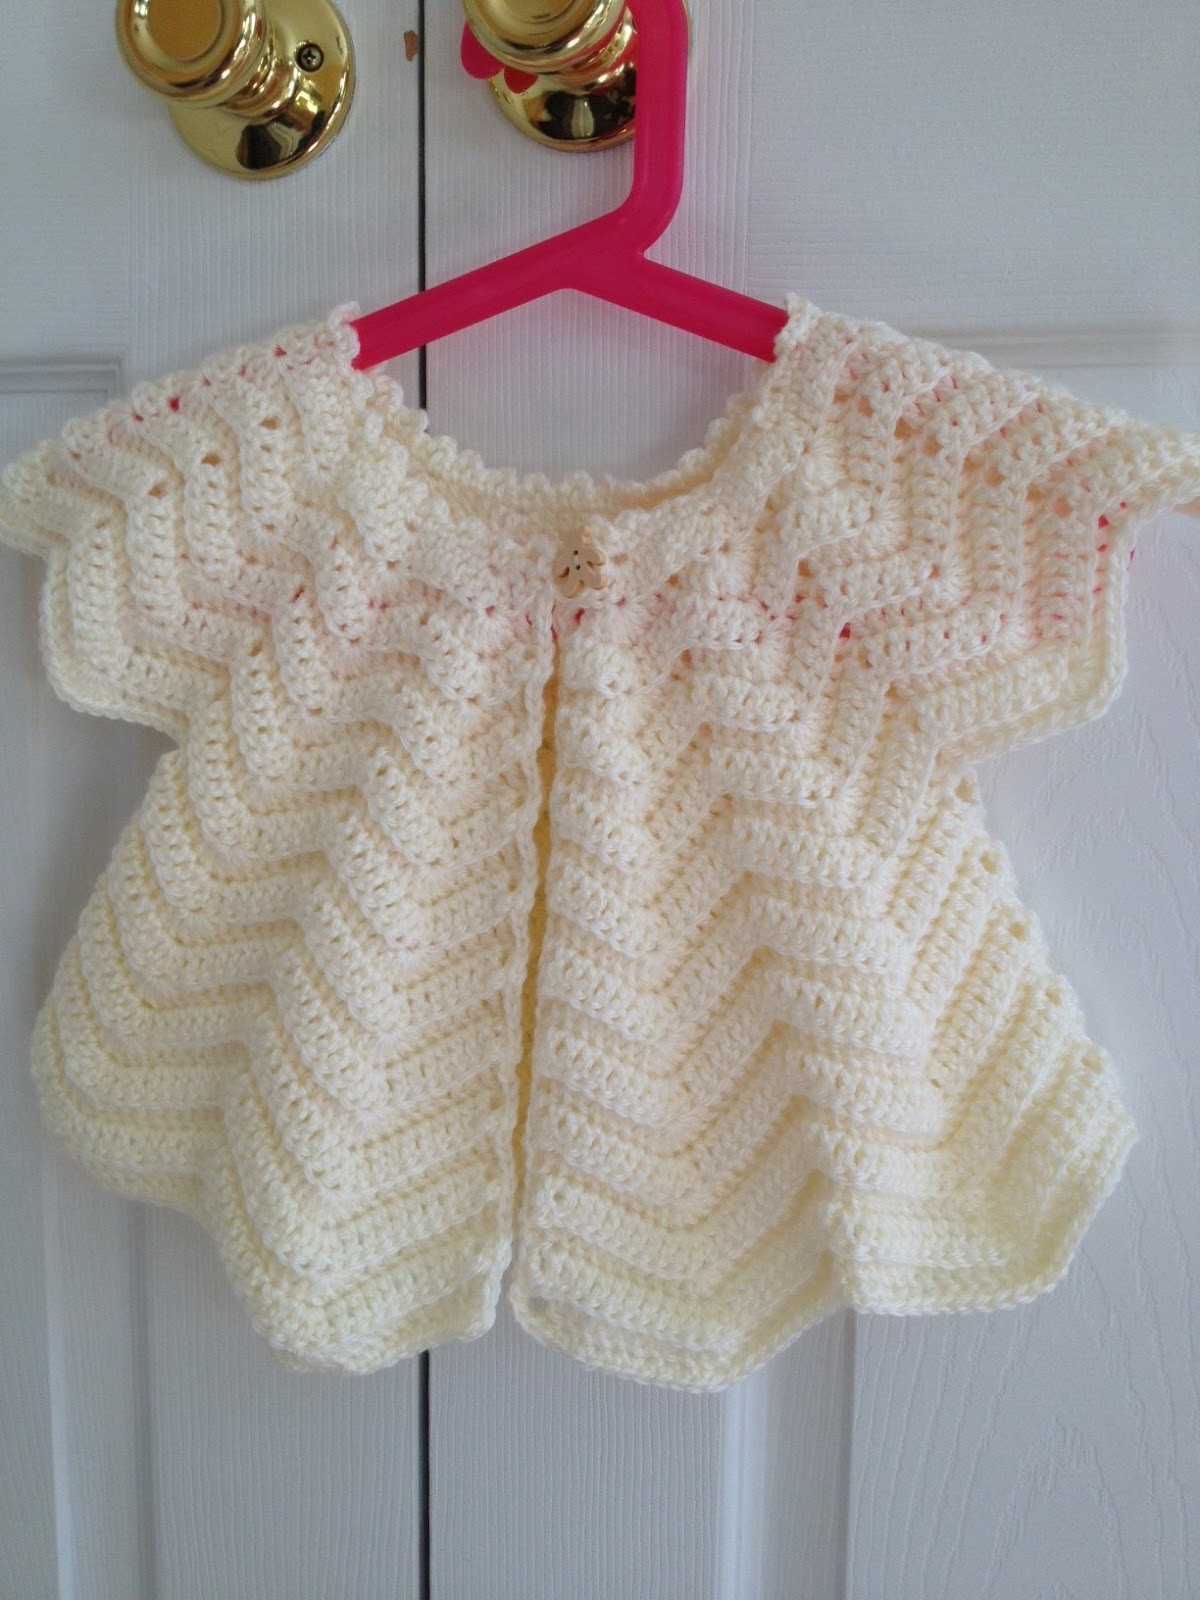 Crochet Baby Cardigan Best Of Agnes Gurumi Emmy S Baby Cardigan Free Pattern Of Amazing 49 Pics Crochet Baby Cardigan